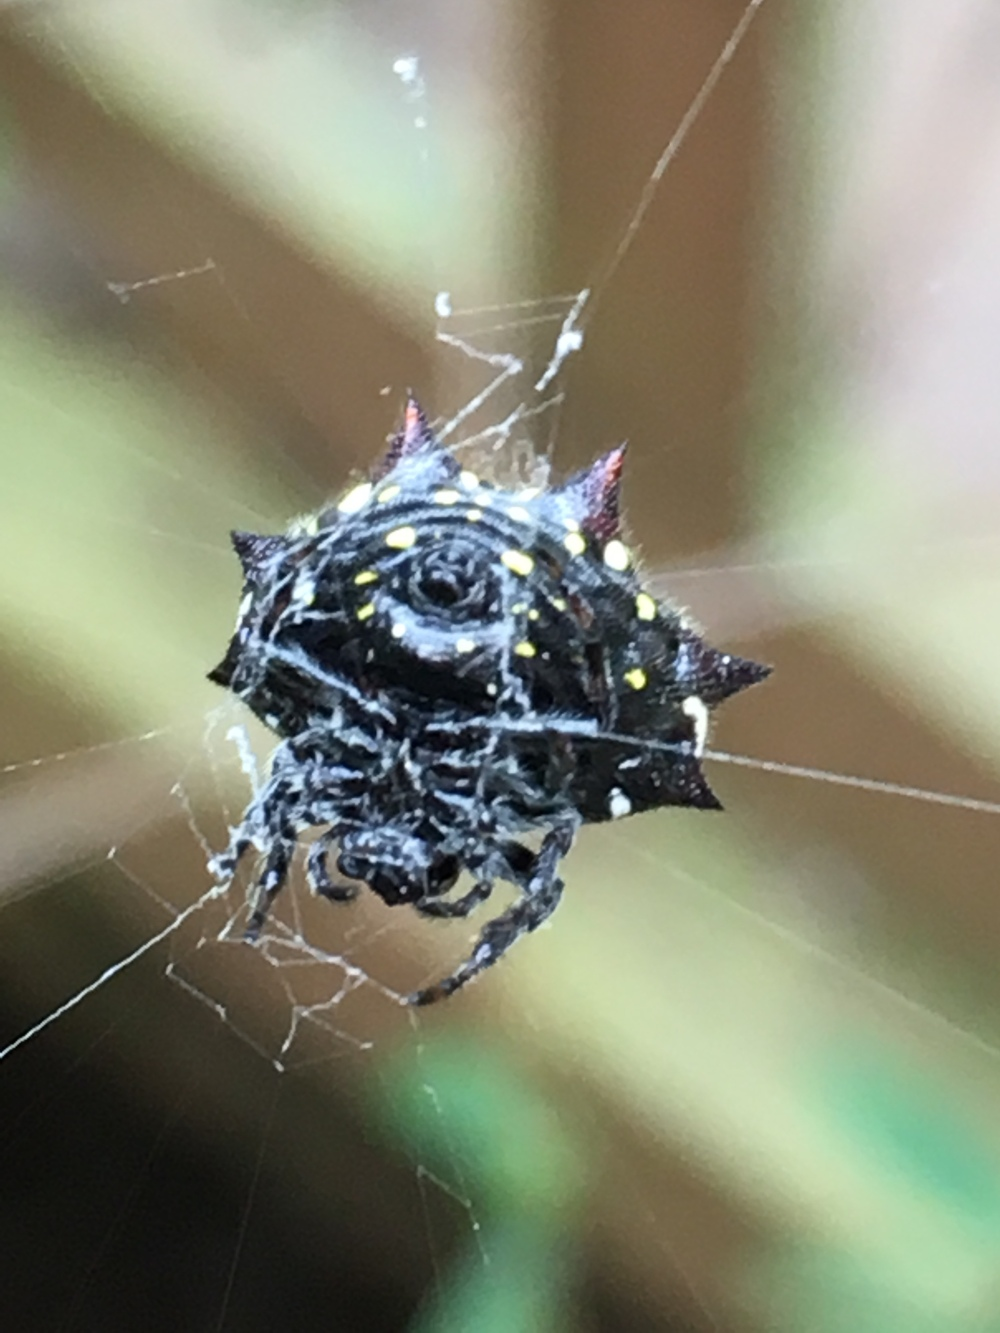 Spinybacked Orbweaver Spider Gasteracantha cancriformis